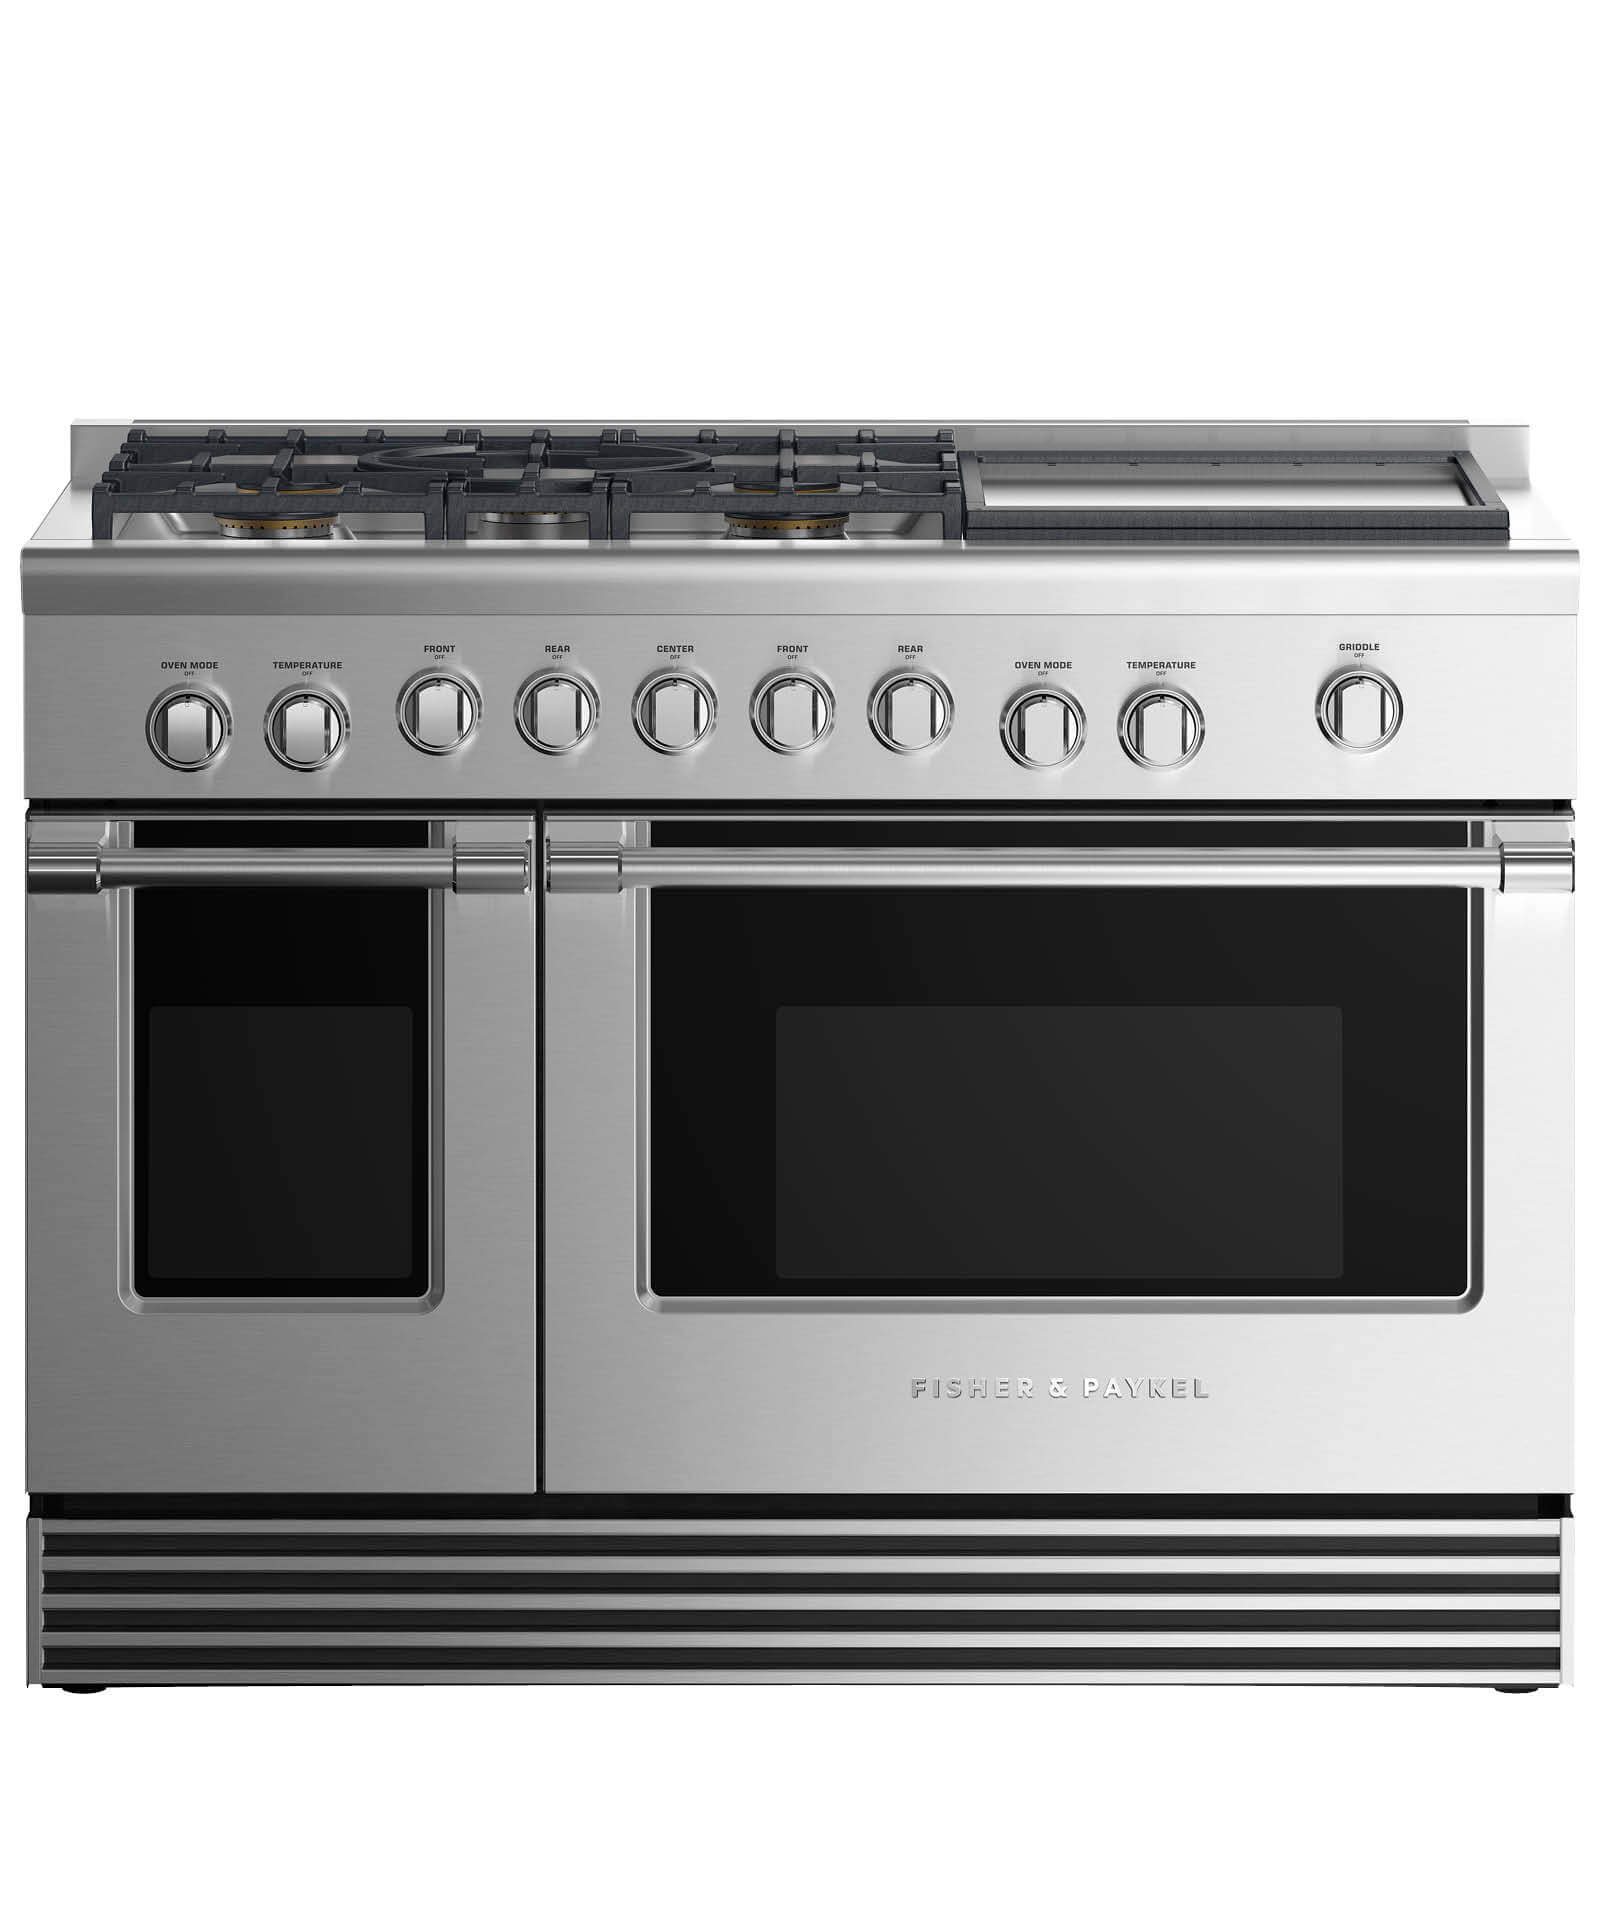 "Fisher and Paykel Gas Range 48"", 5 Burners with Griddle (LPG)"